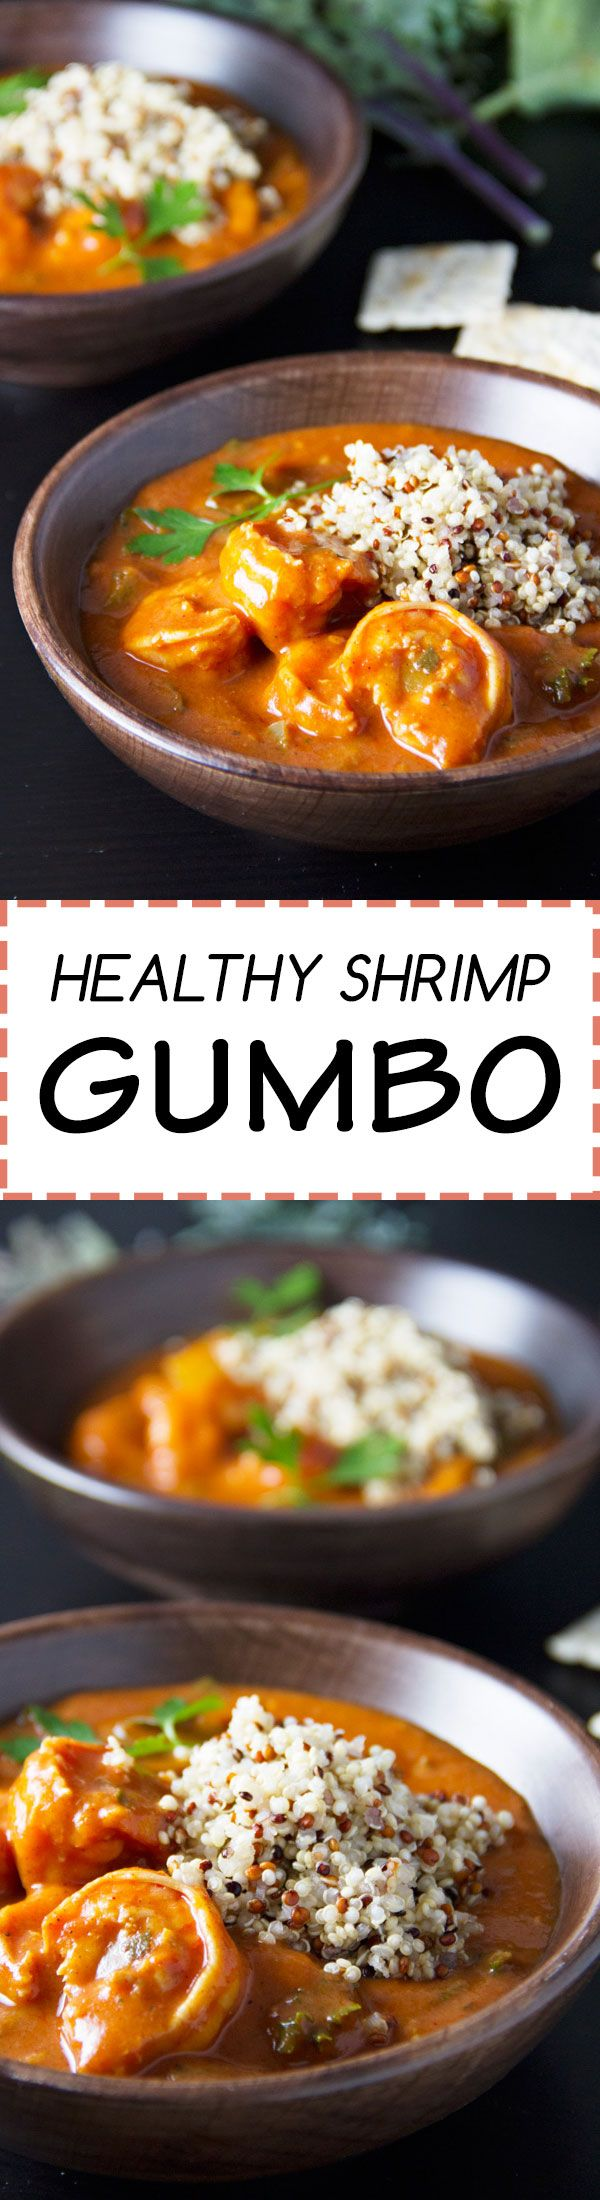 Healthy Shrimp Gumbo with quinoa and green peppers!